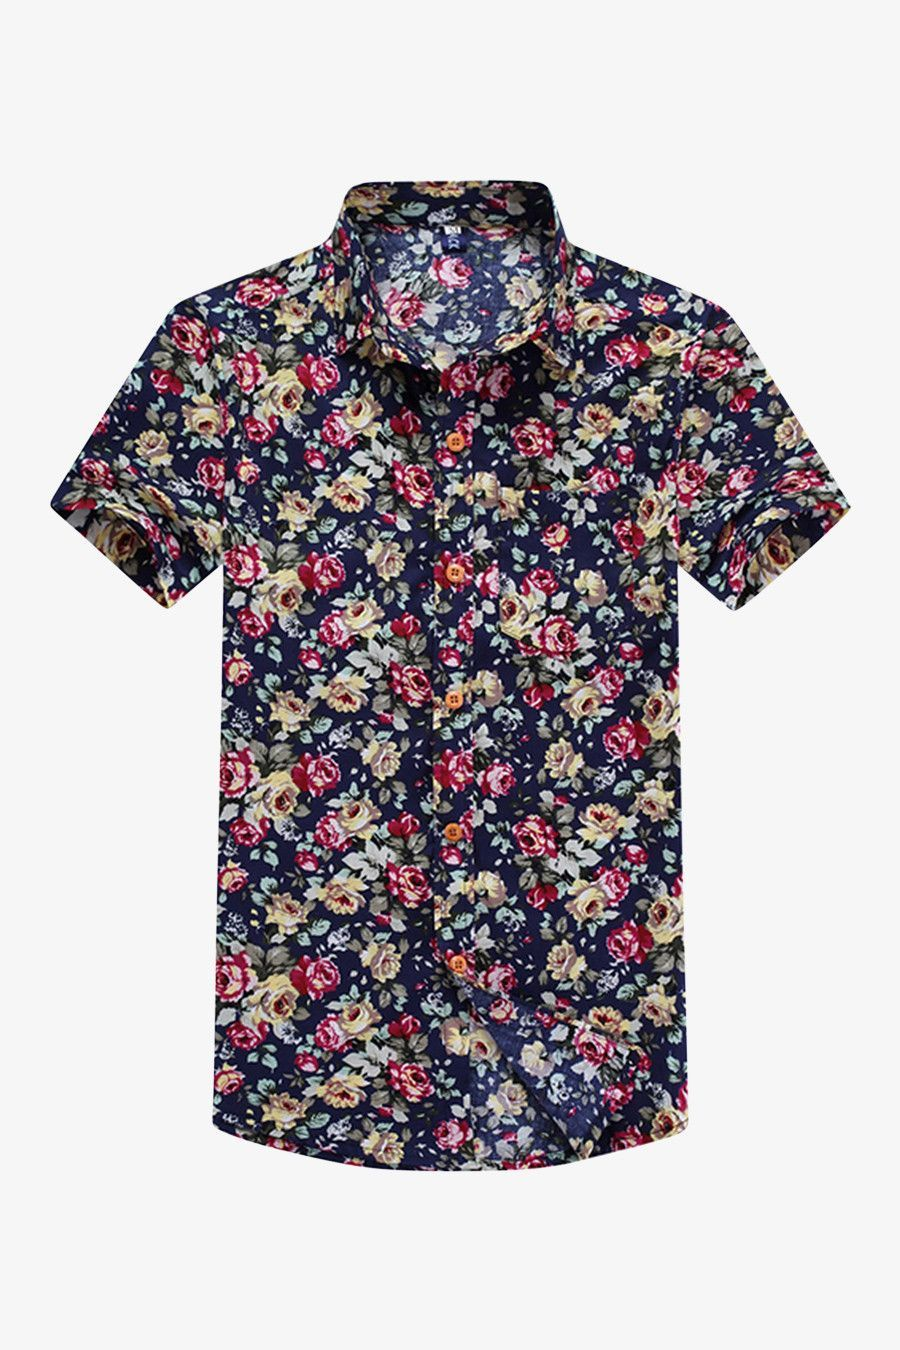 df7f82a65353 The bold floral print of this shirt adds a bit of Hawaiian style flair to  this button down men's shirt.